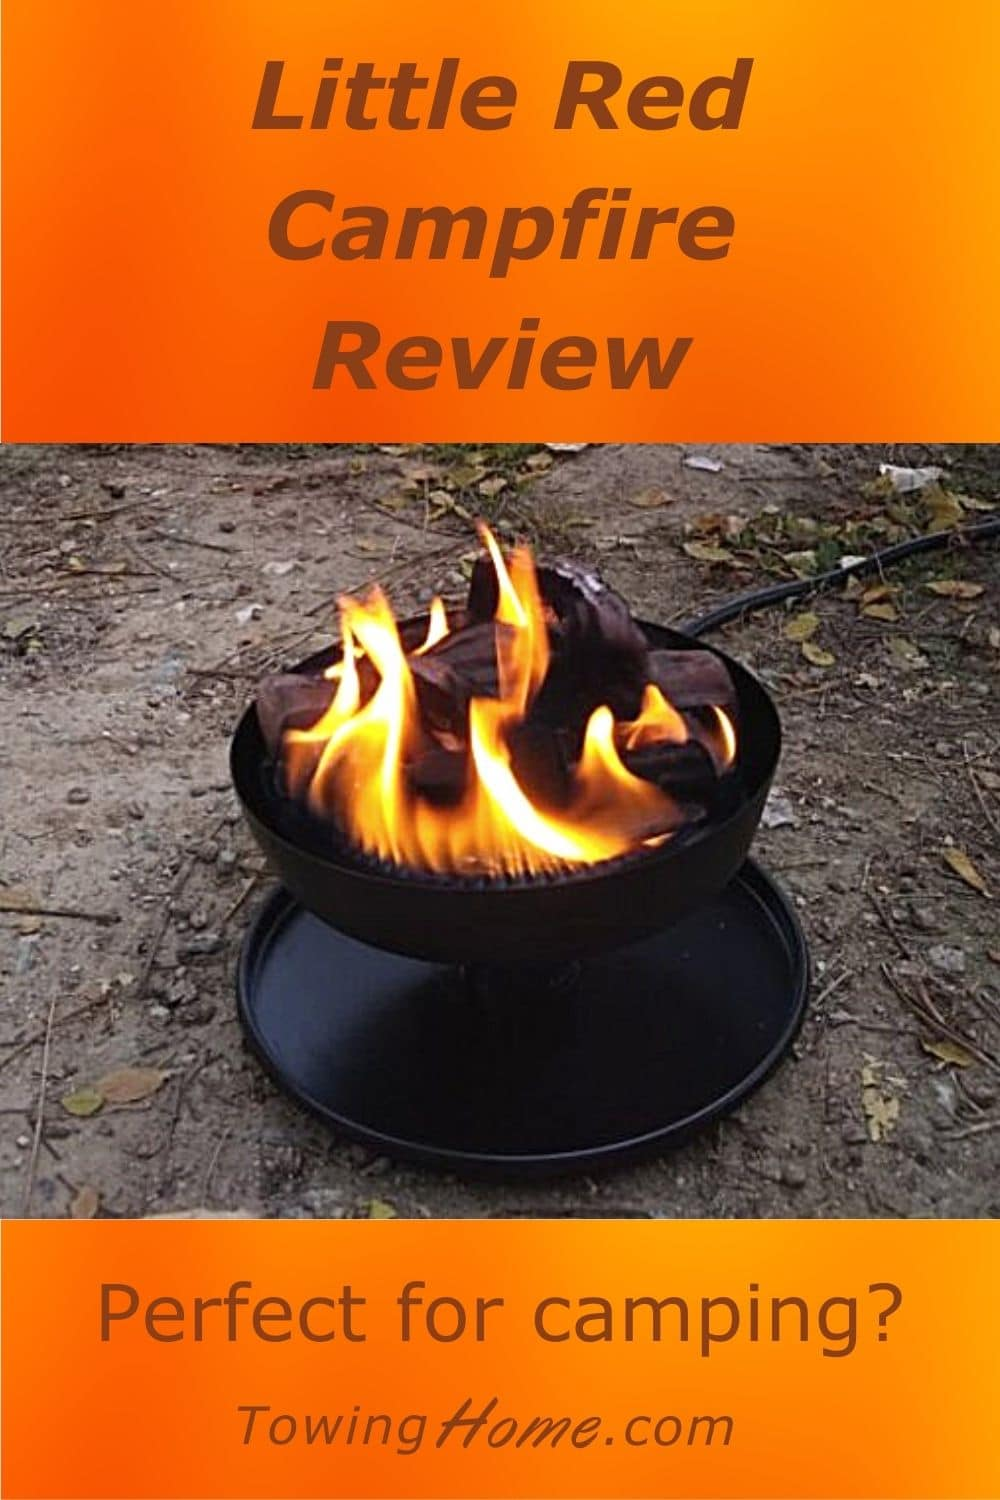 Little Red Campfire - Portable Propane Fire Pit Review